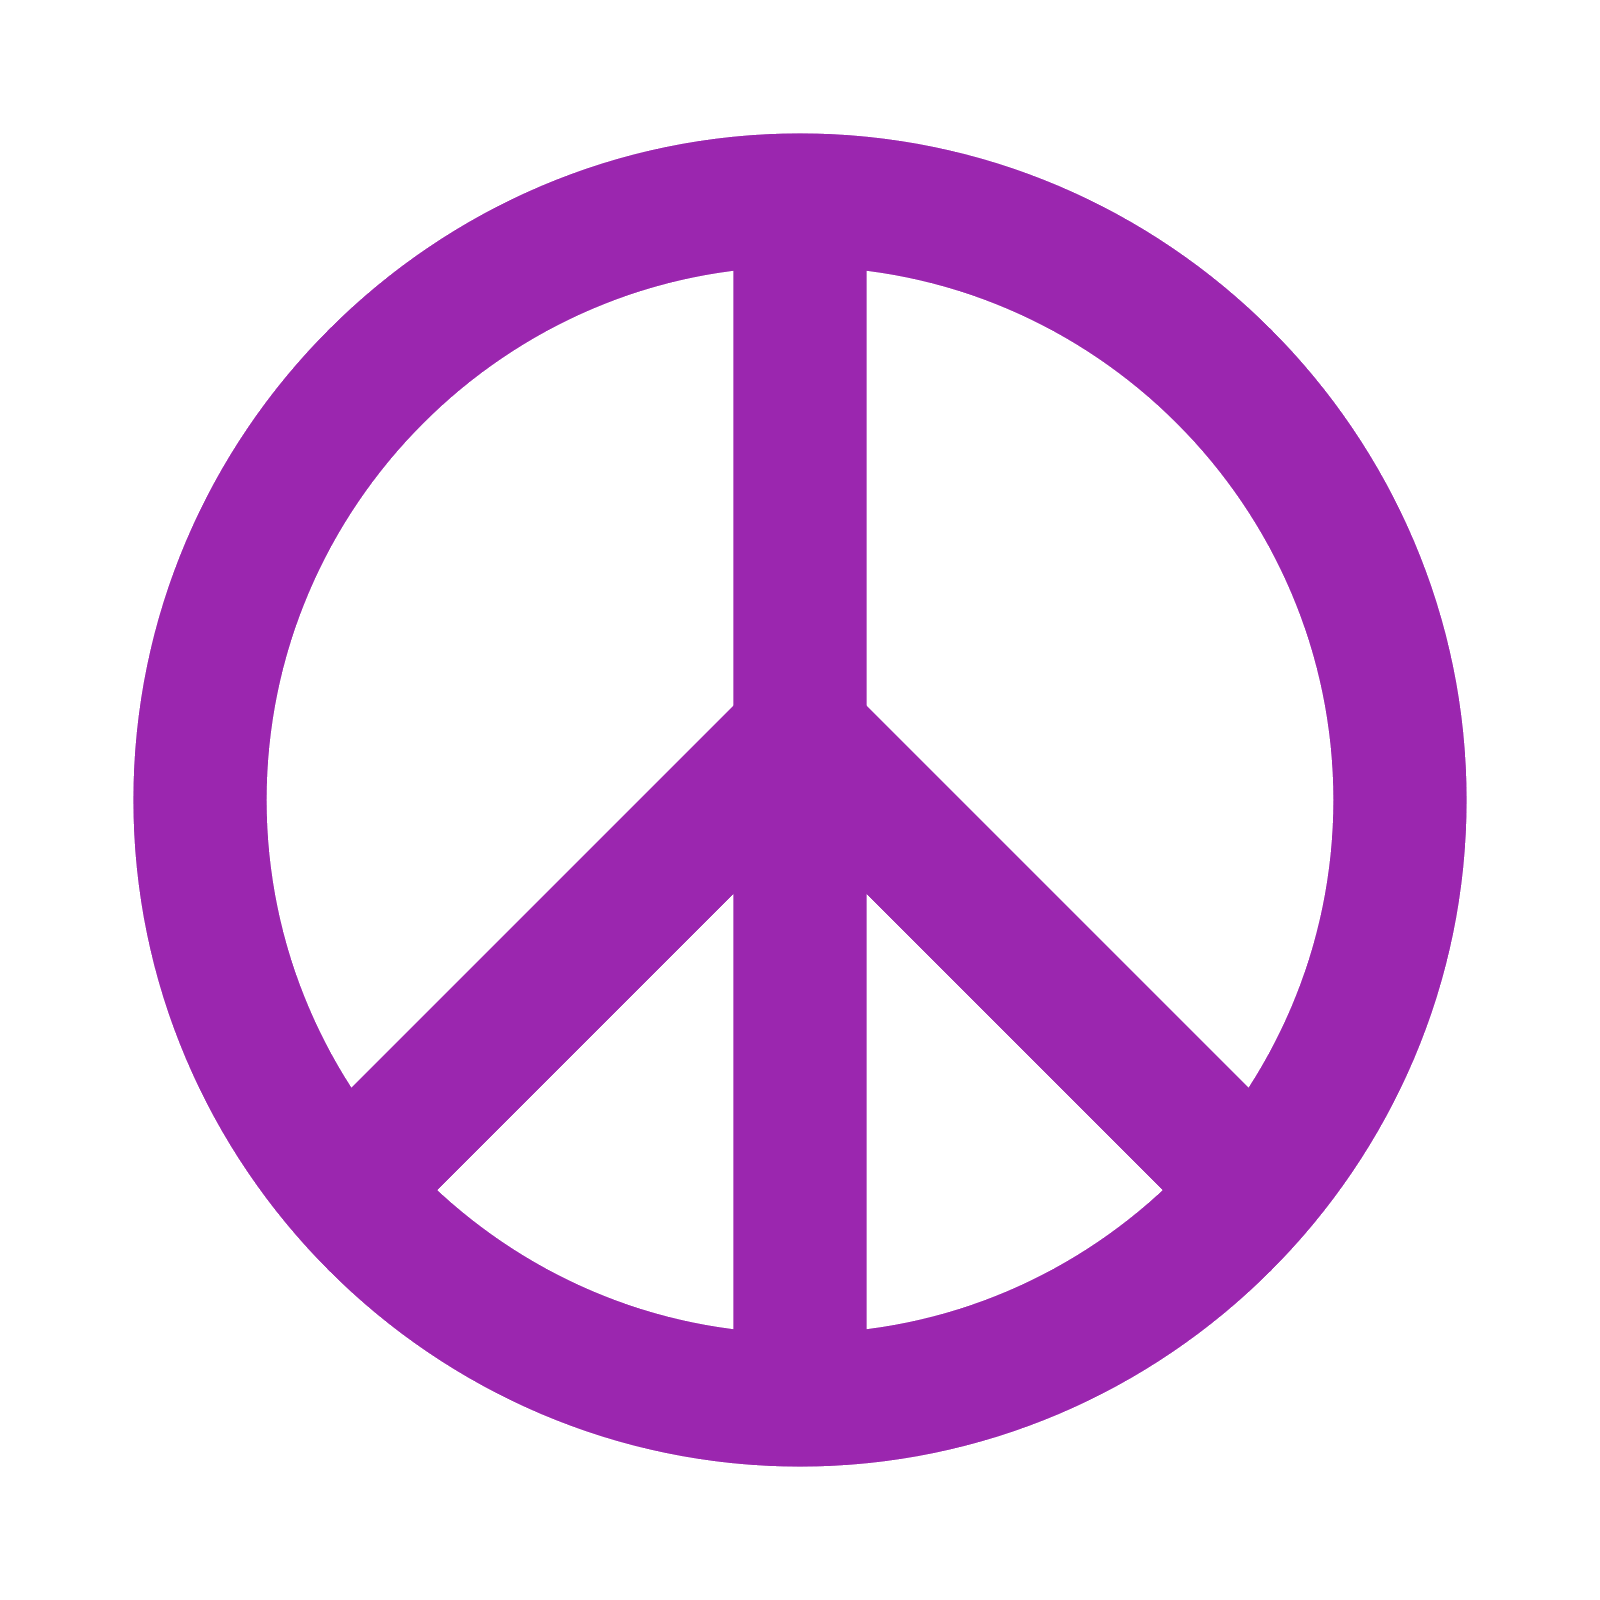 Valley vector peaceful. Peace symbol icon free